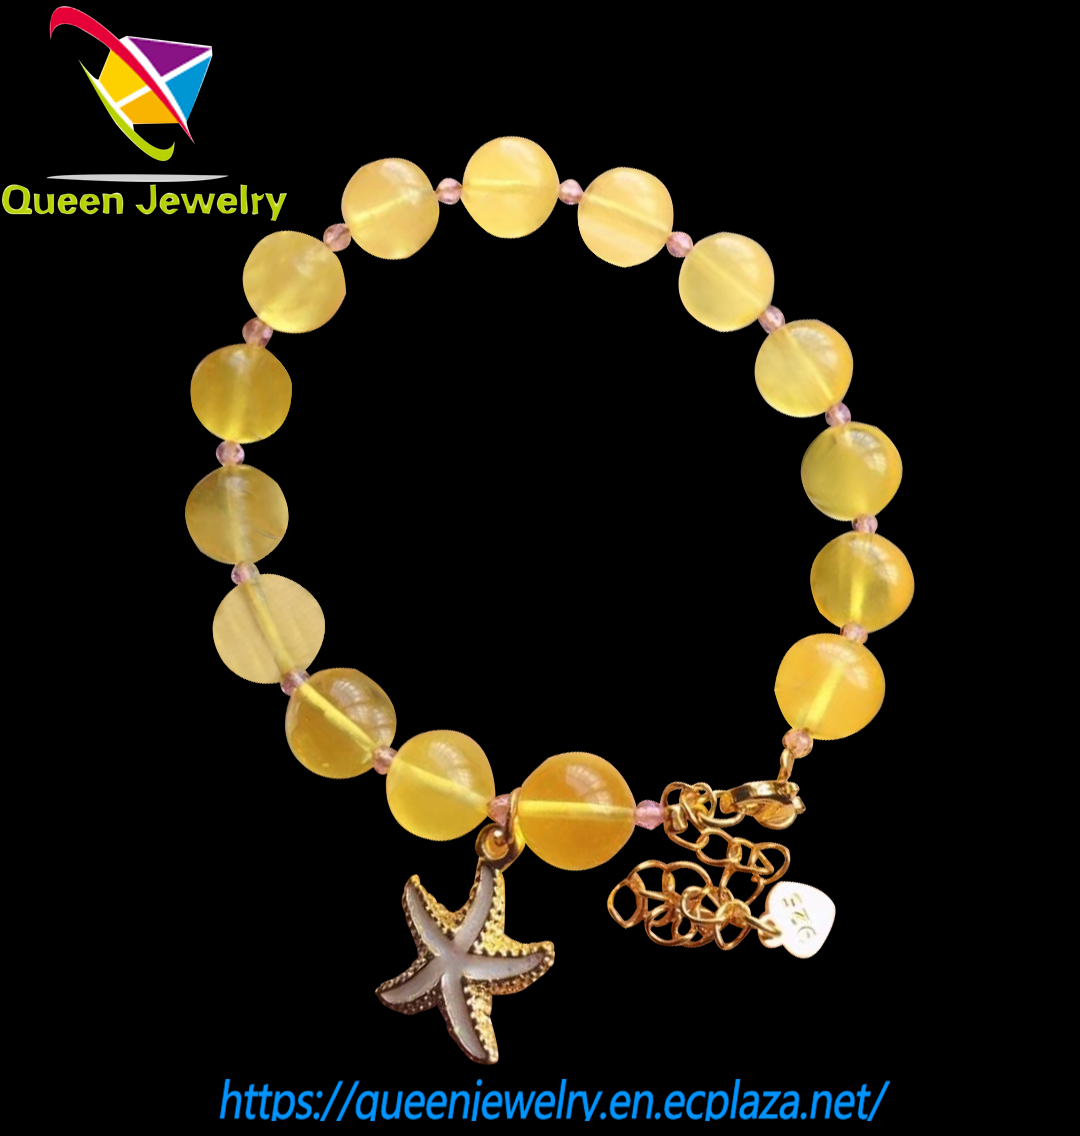 paparazzi jewelry bead bracelet with beeswax yellow color bracelets for women and baby girl